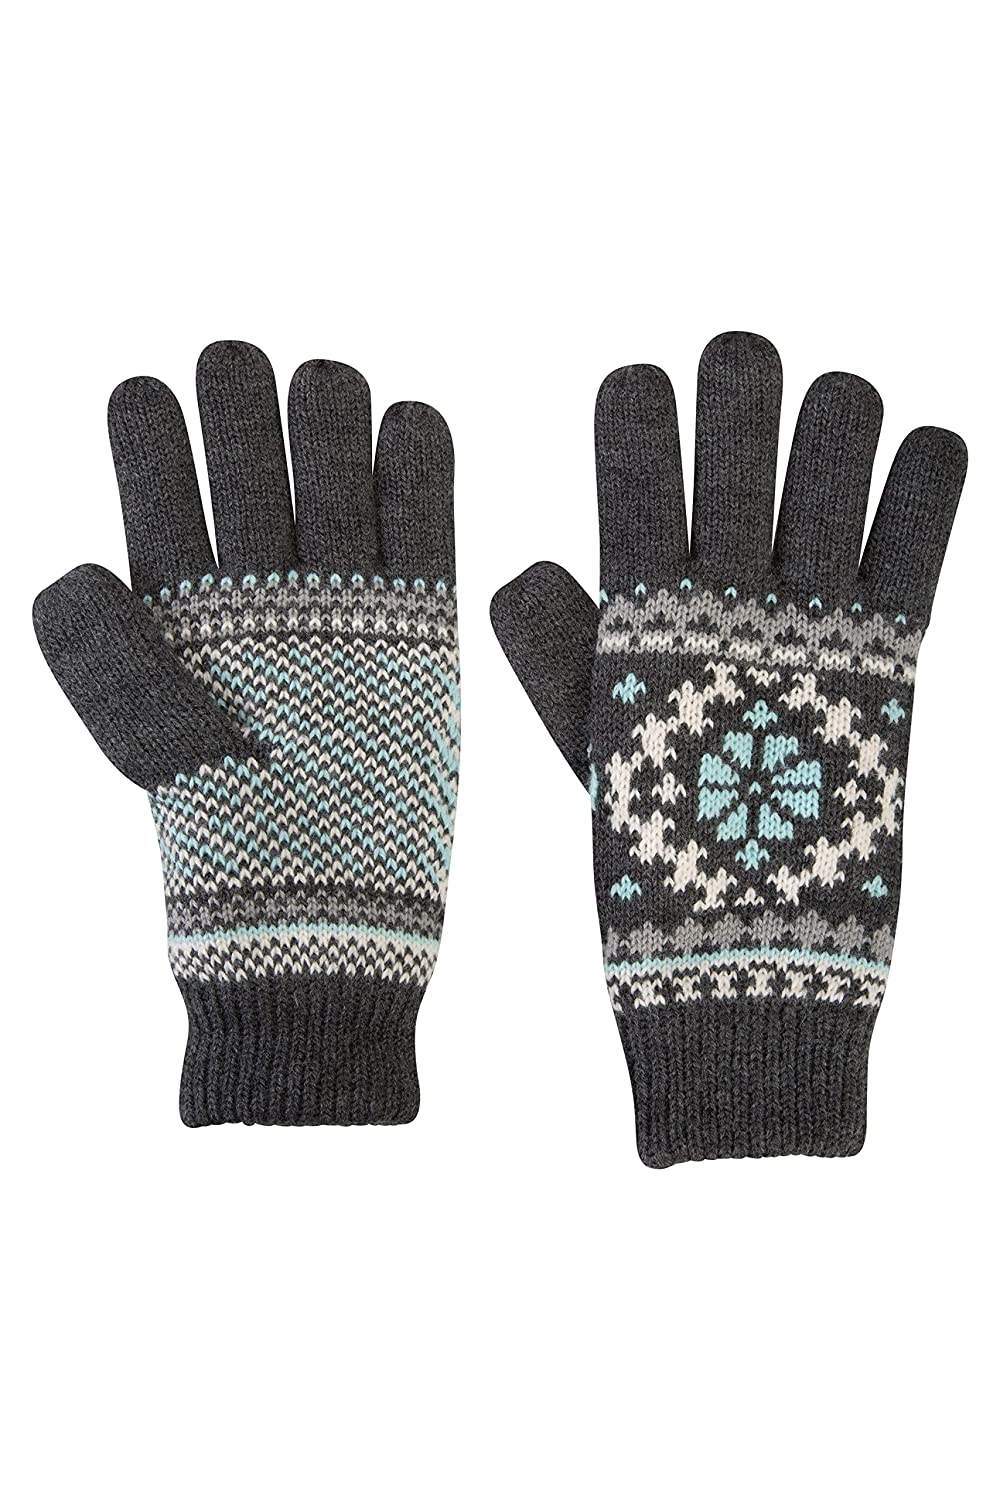 Mountain Warehouse Thinsulate Fairisle Womens Glove - Knitted Effect, Double Lined Thinsulate Material Extra Warmth - Lightweight & Easy to Pack Away - 25.5cm X 11cm Grey 025569024001